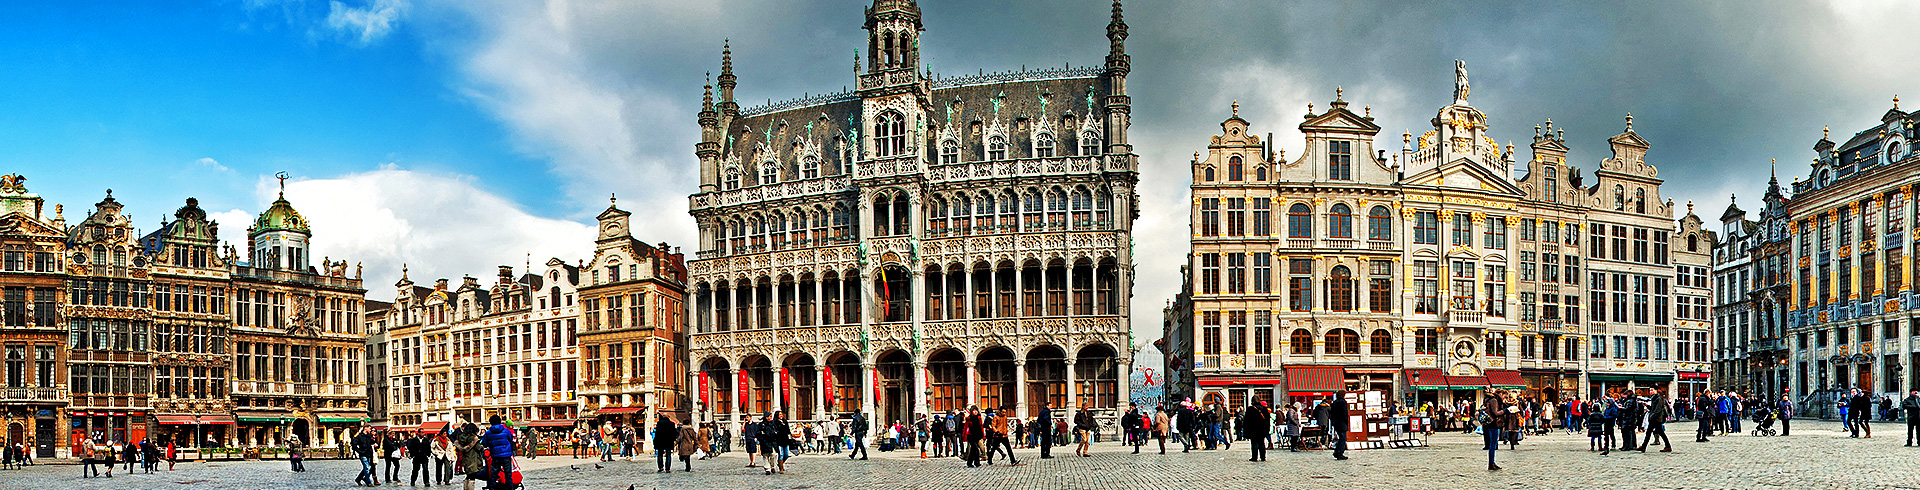 Discounted flight tickets to Belgium - IFlyFirstClass